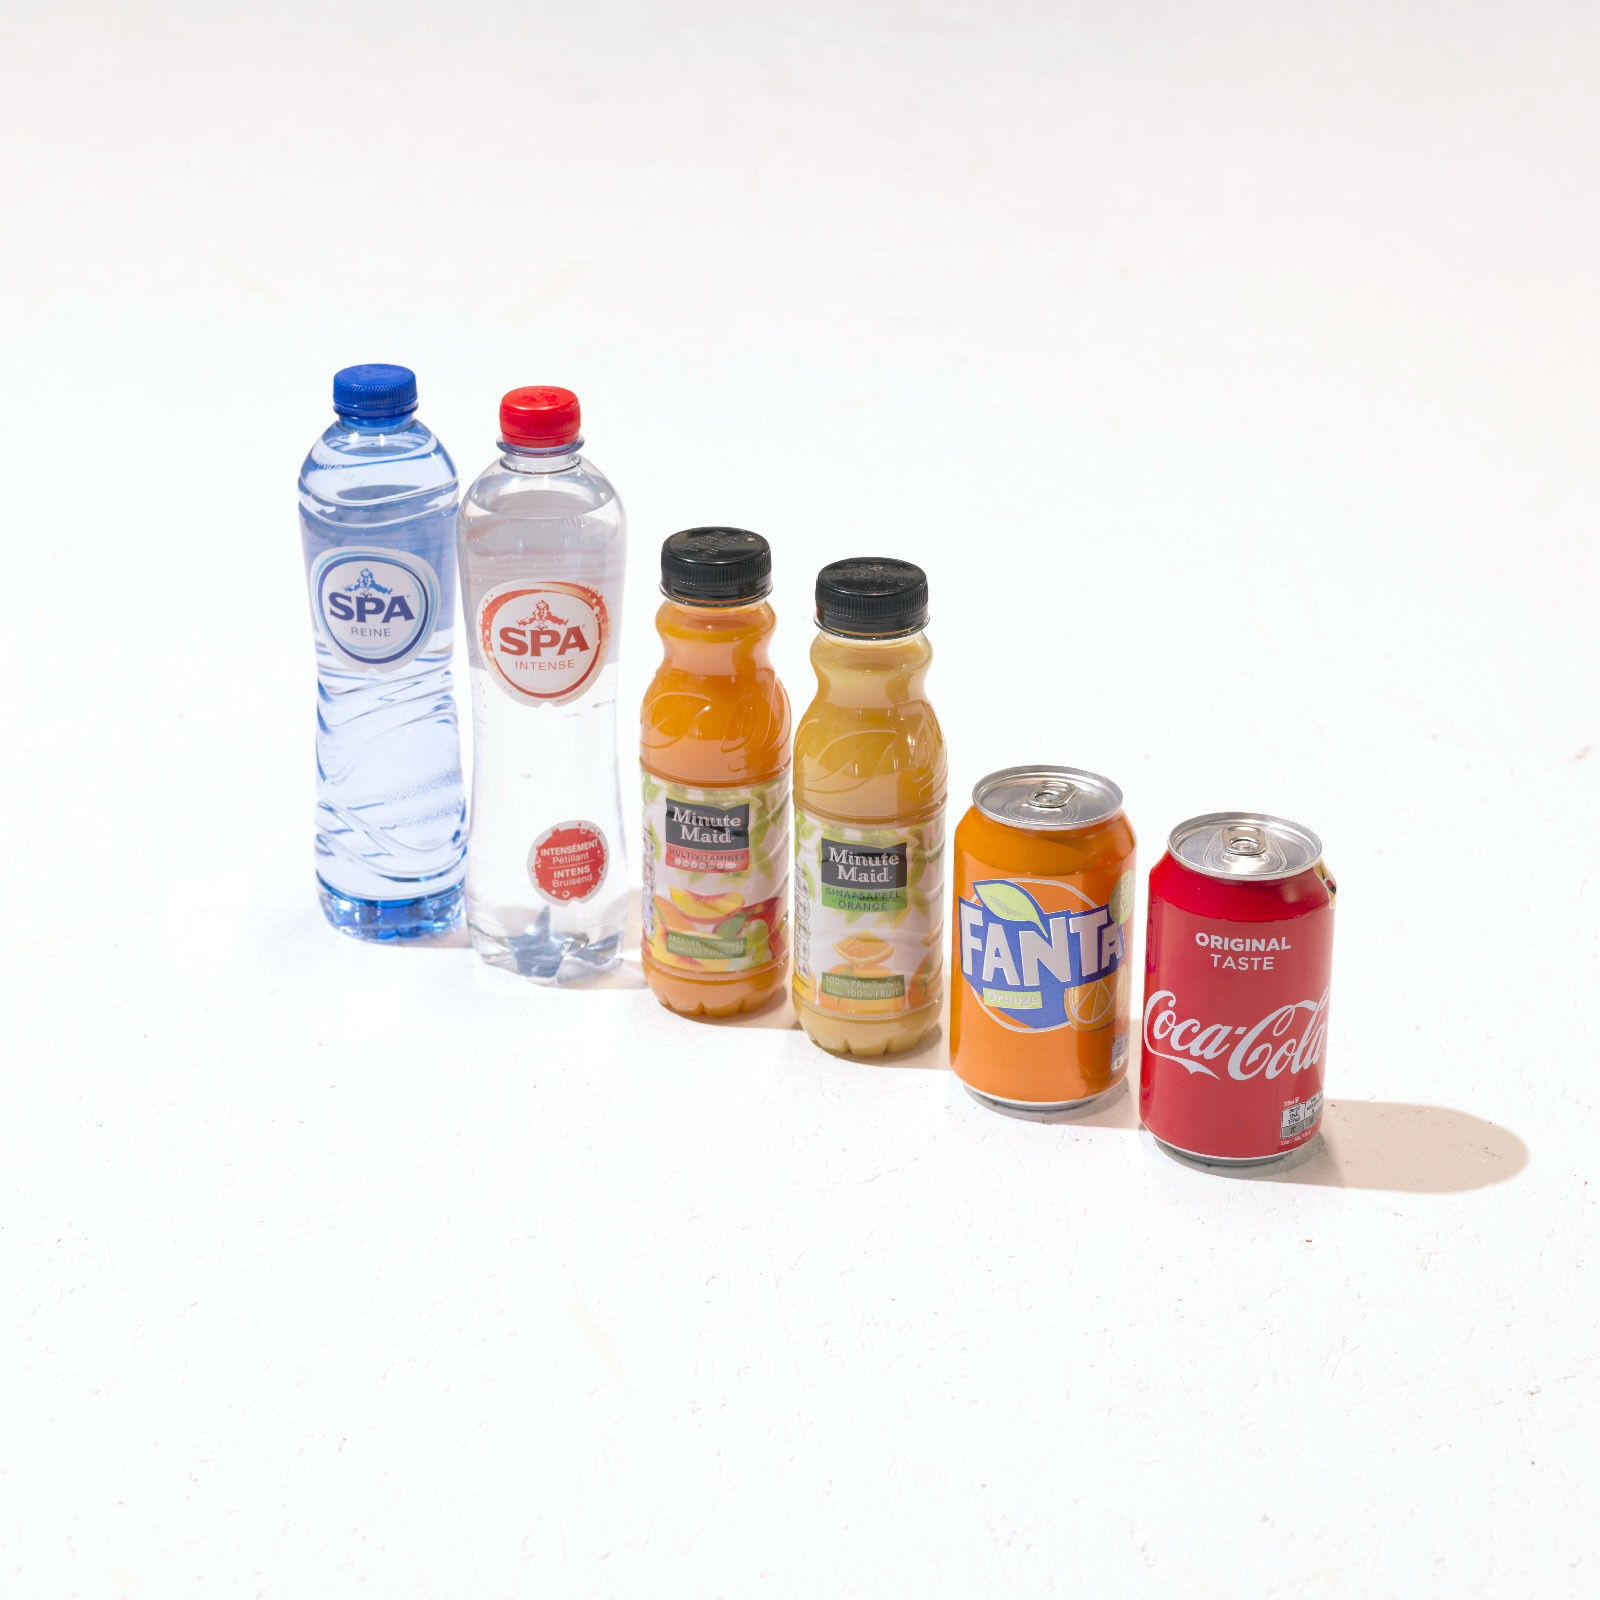 Water & Soda Classic drinks available to rent / verhuur / location at 50.8 Studio • Belgïe, Belgique, Belgium, Catering, Huur, Location, Louer, Only in, Photo, Rent, Studio, Verhuur, Video